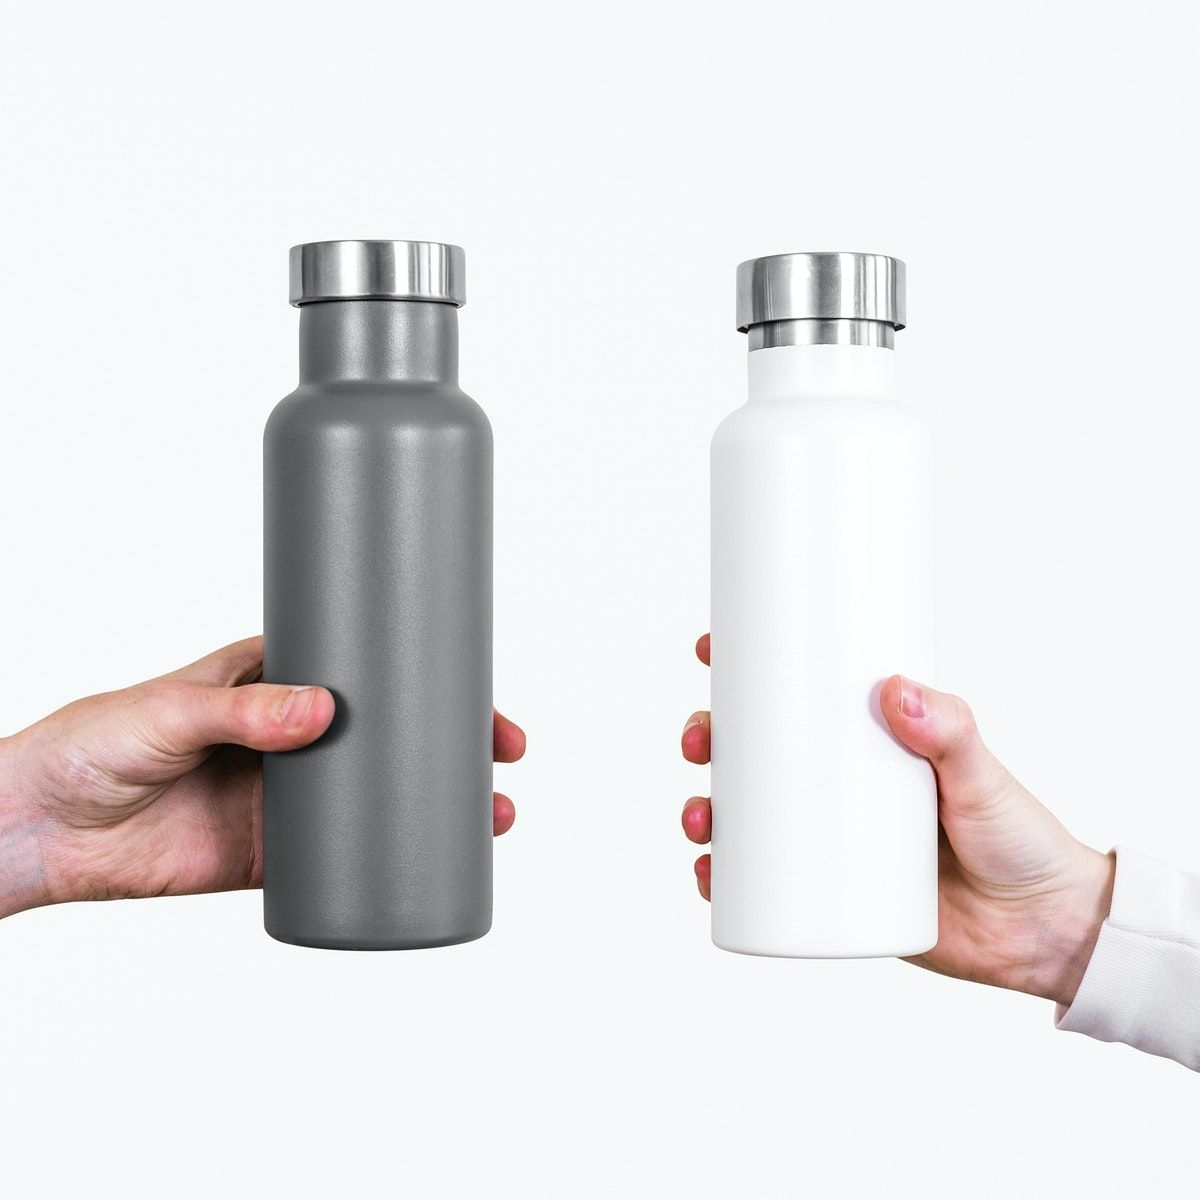 Download Premium Illustration Of Gray And White Water Bottle Psd Mockups White Water Bottle Bottle Mockup Grey And White